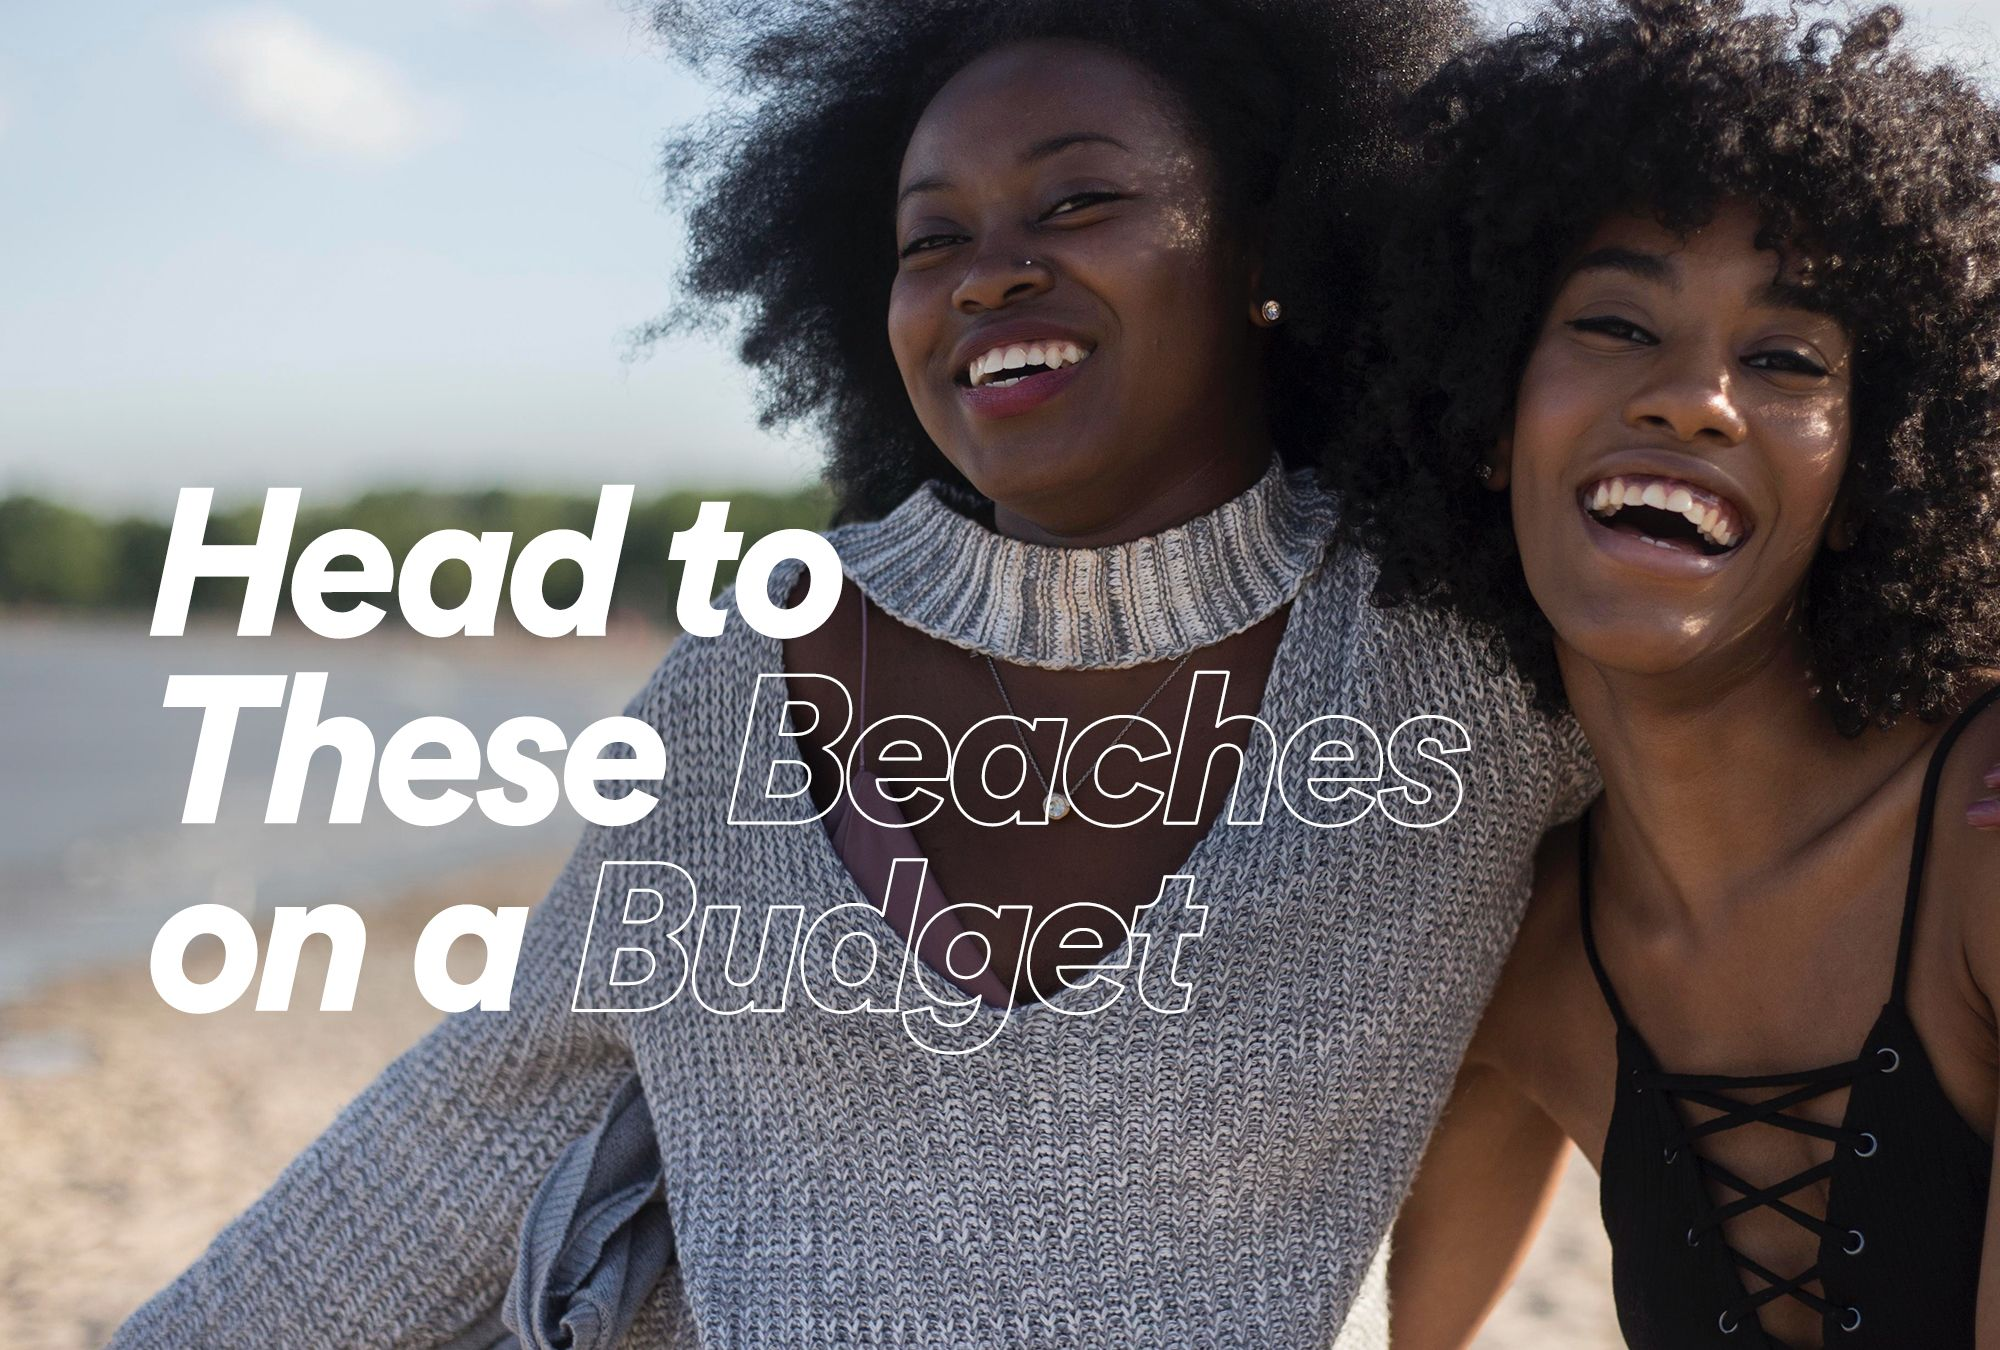 Head to these Beaches on A Budget